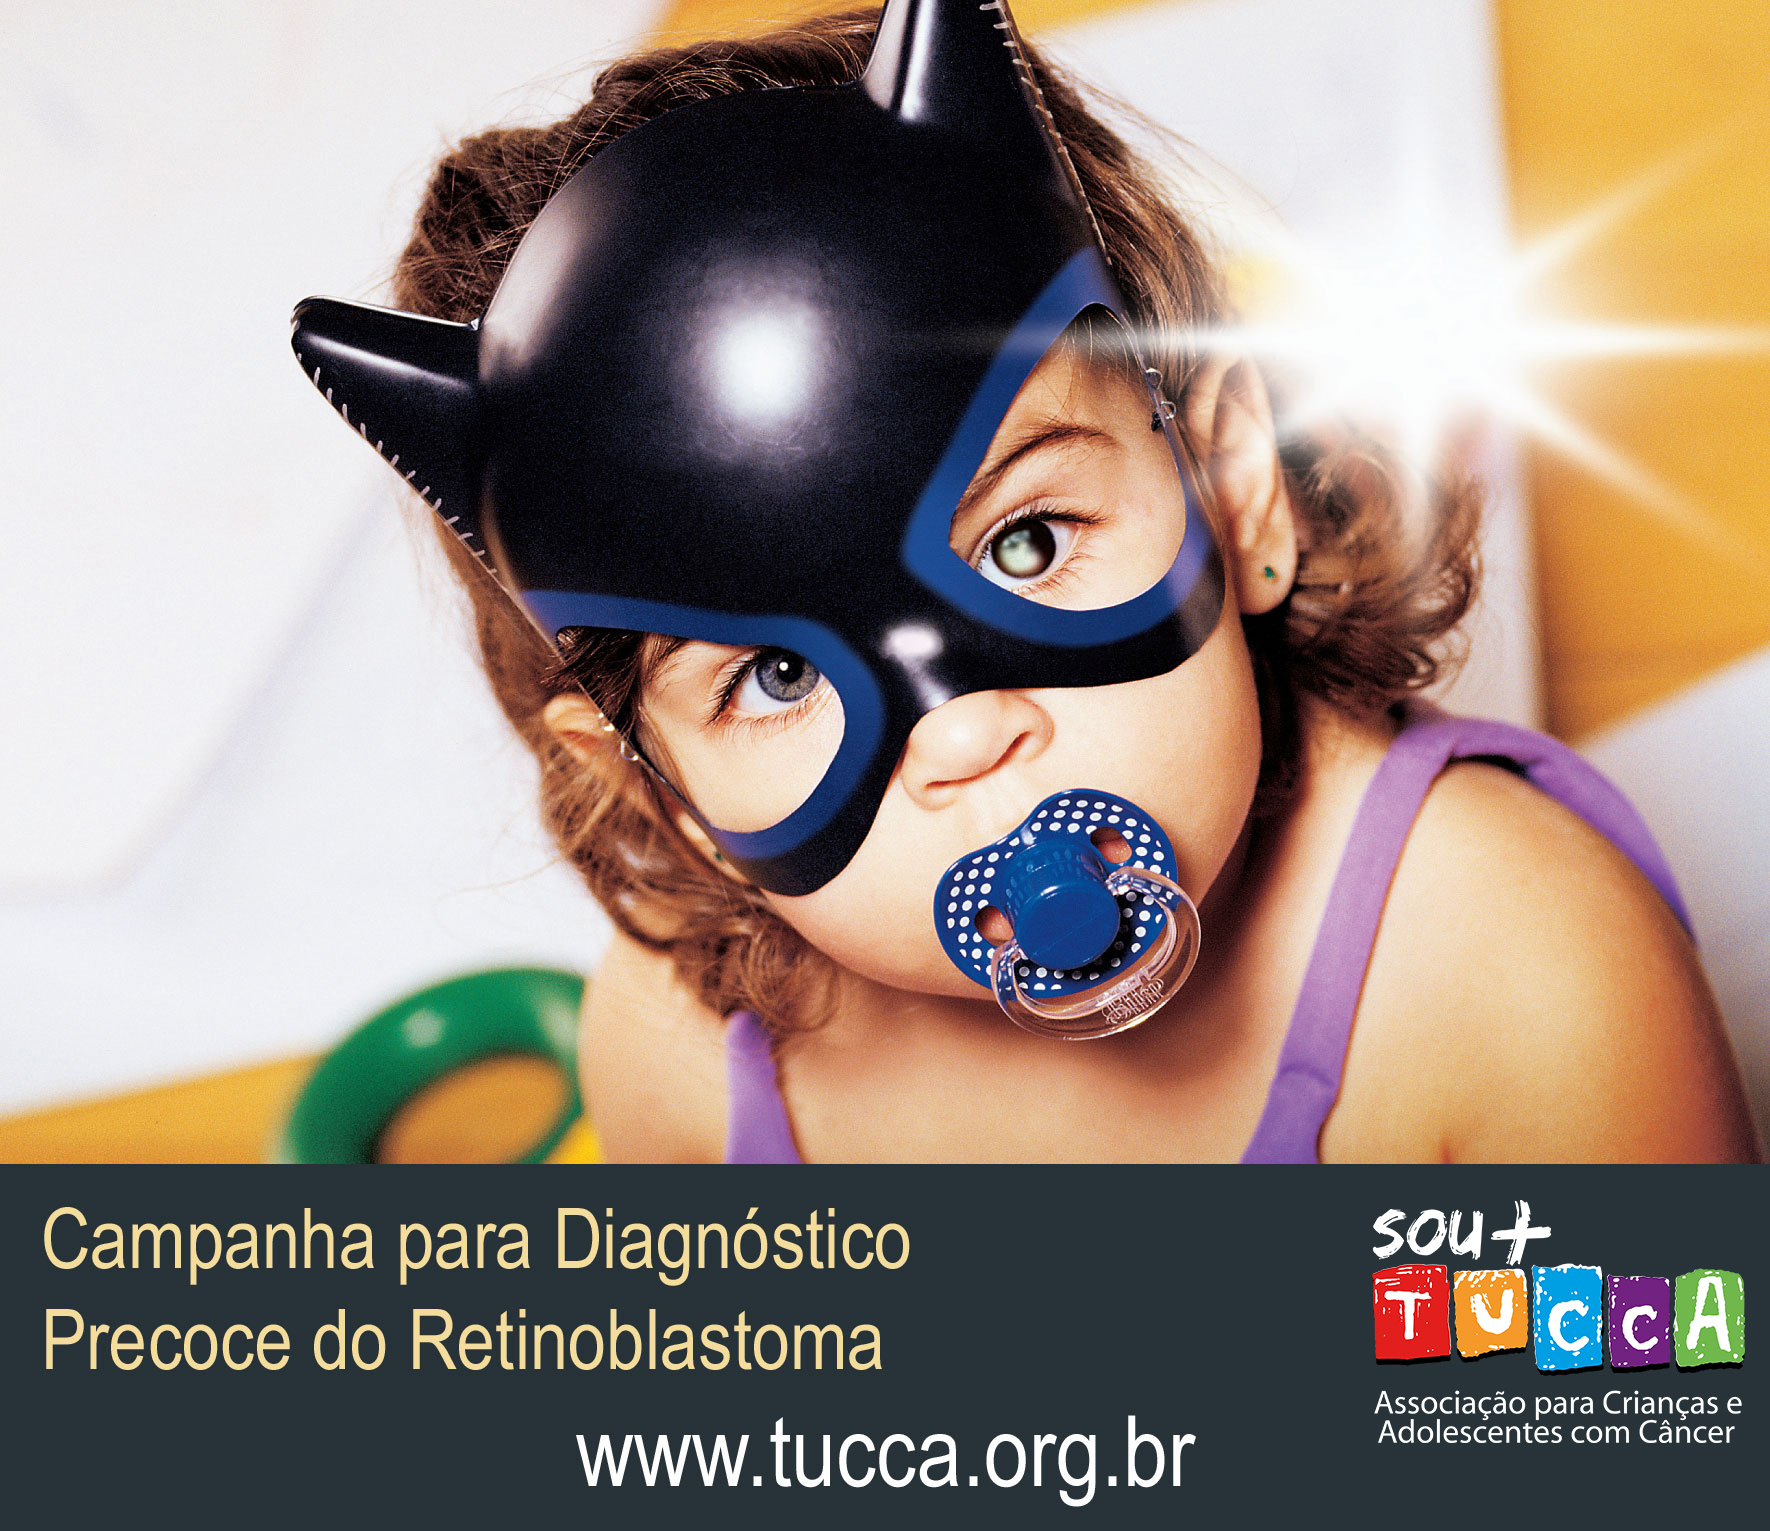 "A Portuguese language awareness poster features a large photo of a child, with a text panel below. The child wears a superhero mask with eye cut-outs. A bright white reflection is clearly visible in the left eye. This is emphasized by reflections of light bouncing off the mask, and a hazy white star-flash superimposed onto the image beside the eye. The child's young age is emphasized by the presence of a pacifier in his mouth. Text below reads: ""Campanha para Diagnostico Precoce do Retinoblastoma. www.tucca.org.br SOU + TUCCA Associação para Crianças e Adolescentes com Câncer"""